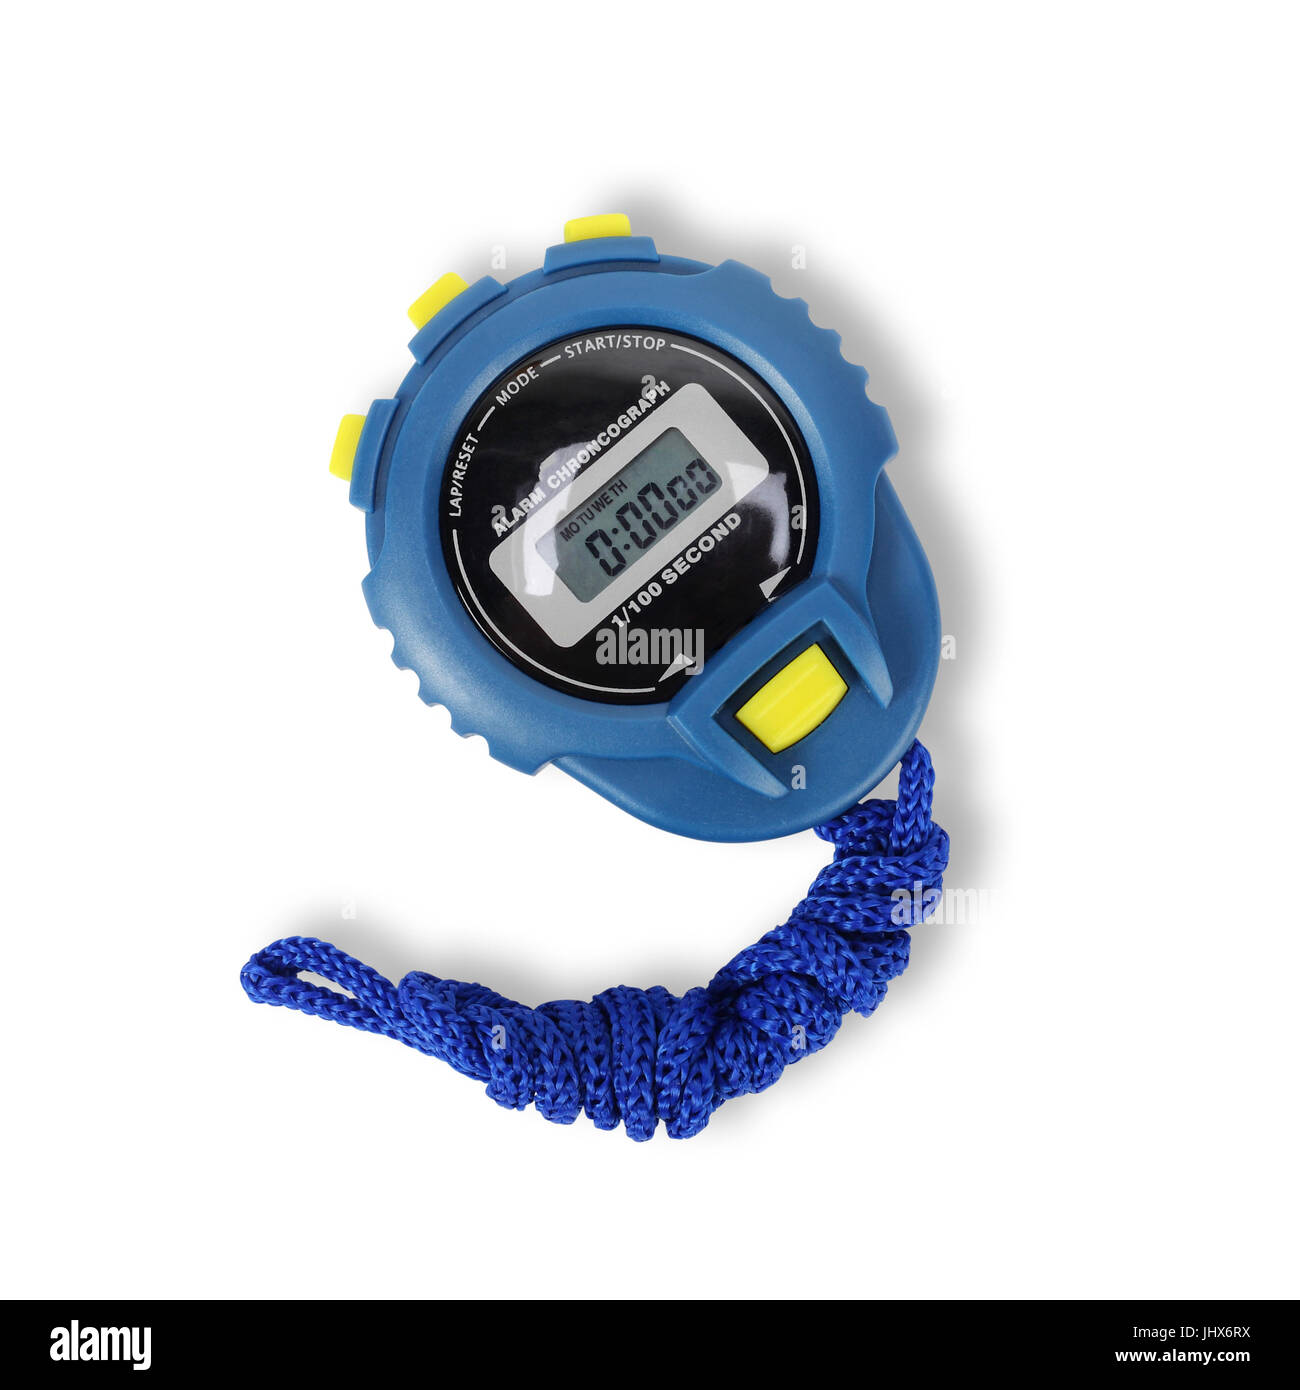 Sports equipment - Blue Digital electronic Stopwatch on a white background. Isolated - Stock Image